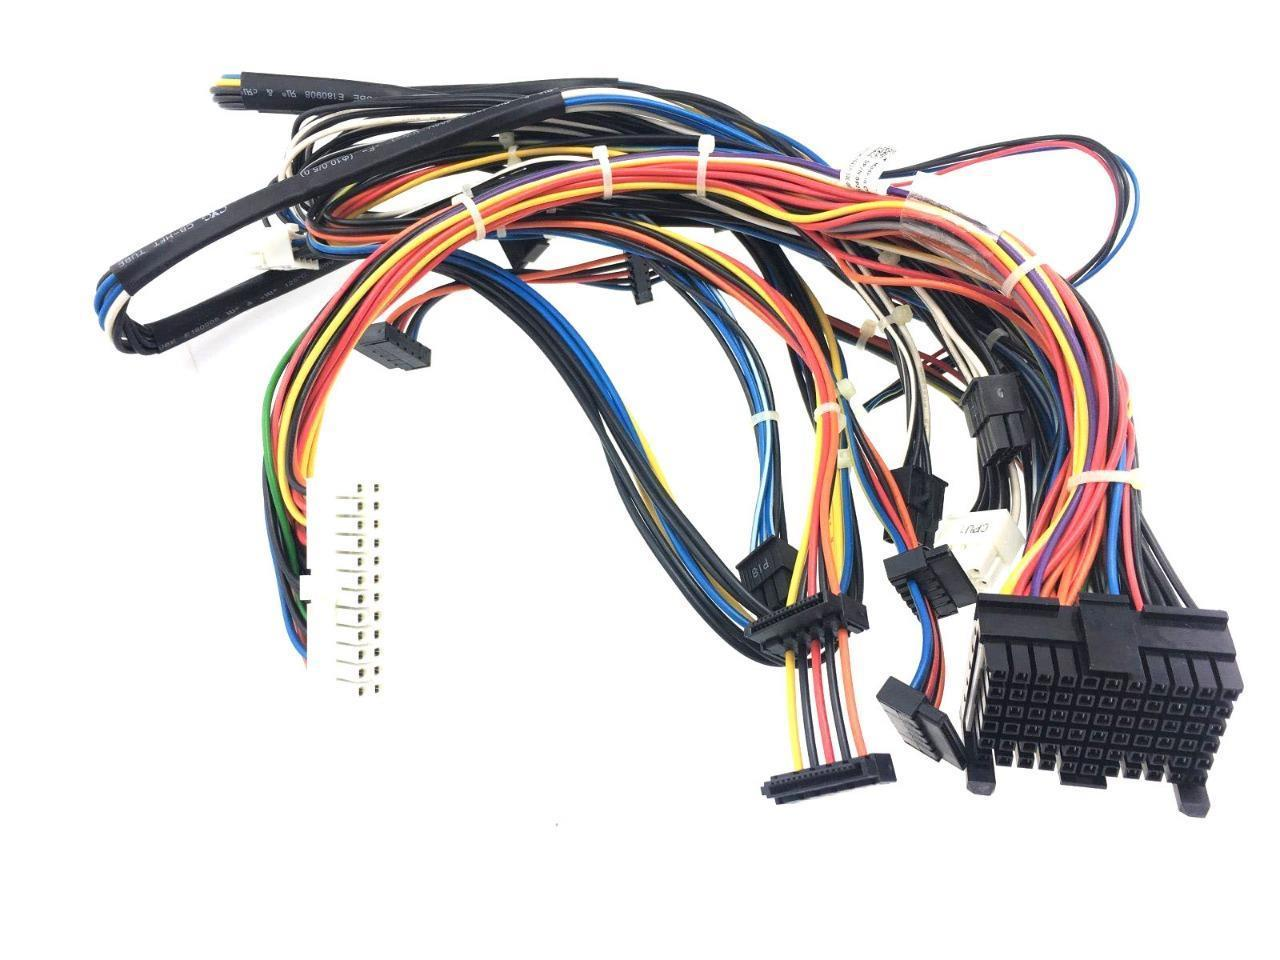 Power Supply Wiring Harness Electrical Diagrams 1000w Dell Diagram Precision T7500 Wir End 9 7 2020 5 59 Am Wires